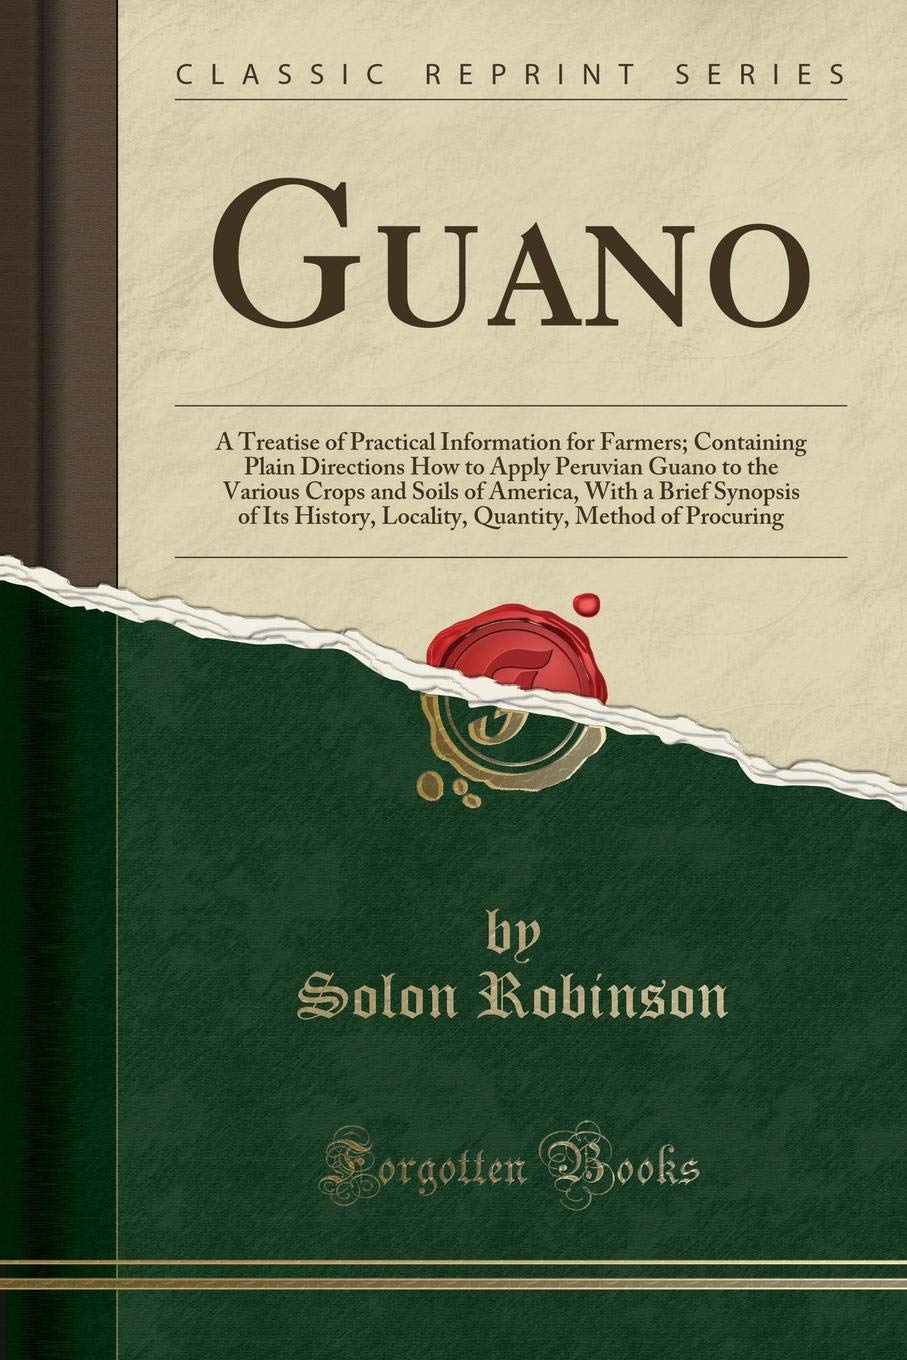 Download Guano: A Treatise of Practical Information for Farmers; Containing Plain Directions How to Apply Peruvian Guano to the Various Crops and Soils of ... Method of Procuring (Classic Reprint) pdf